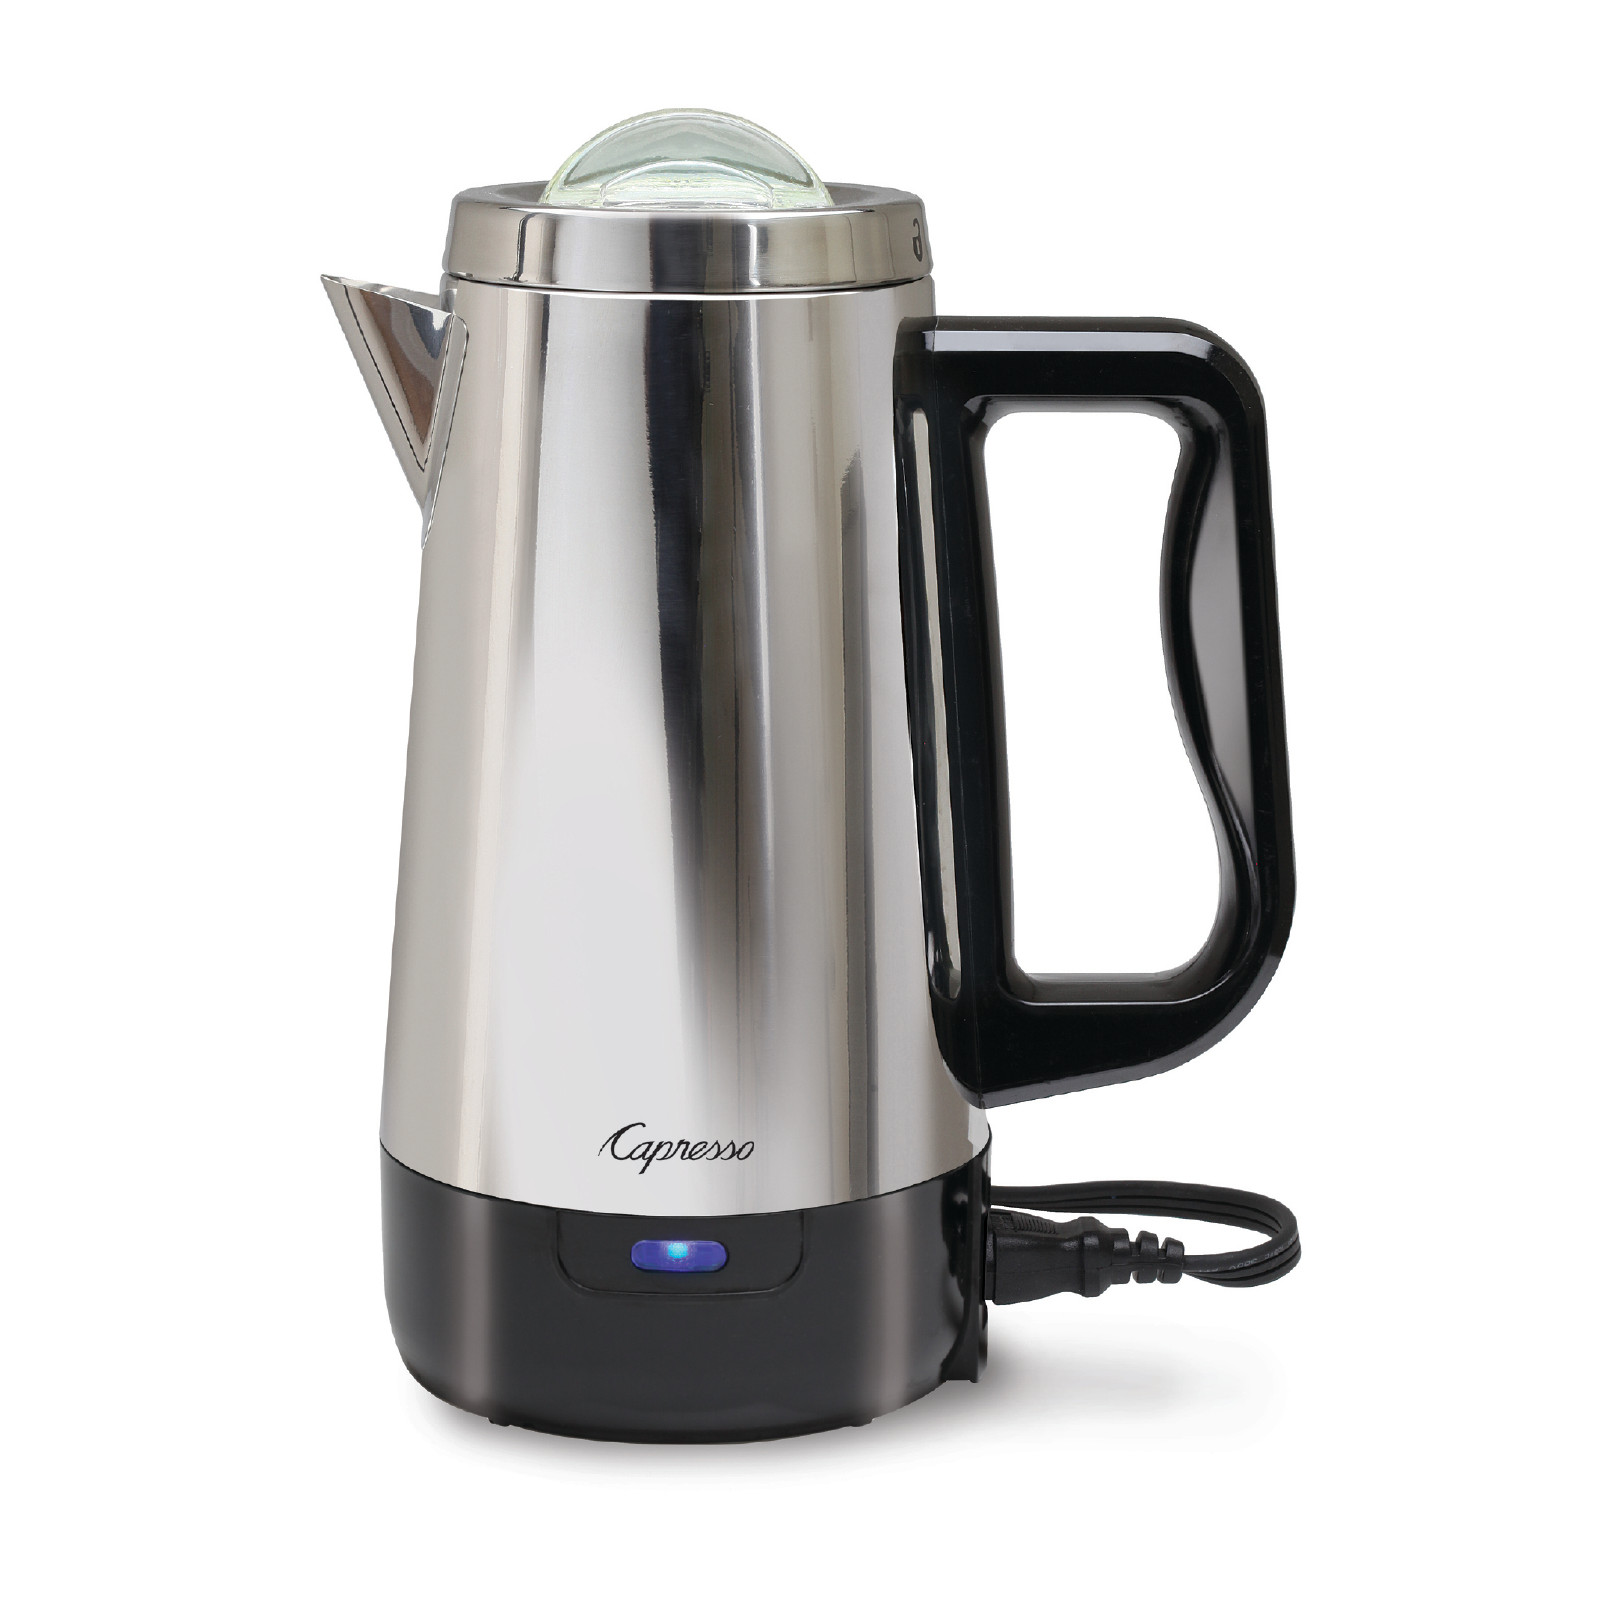 Capresso Perk Stainless Steel 8 Cup Electric Percolator